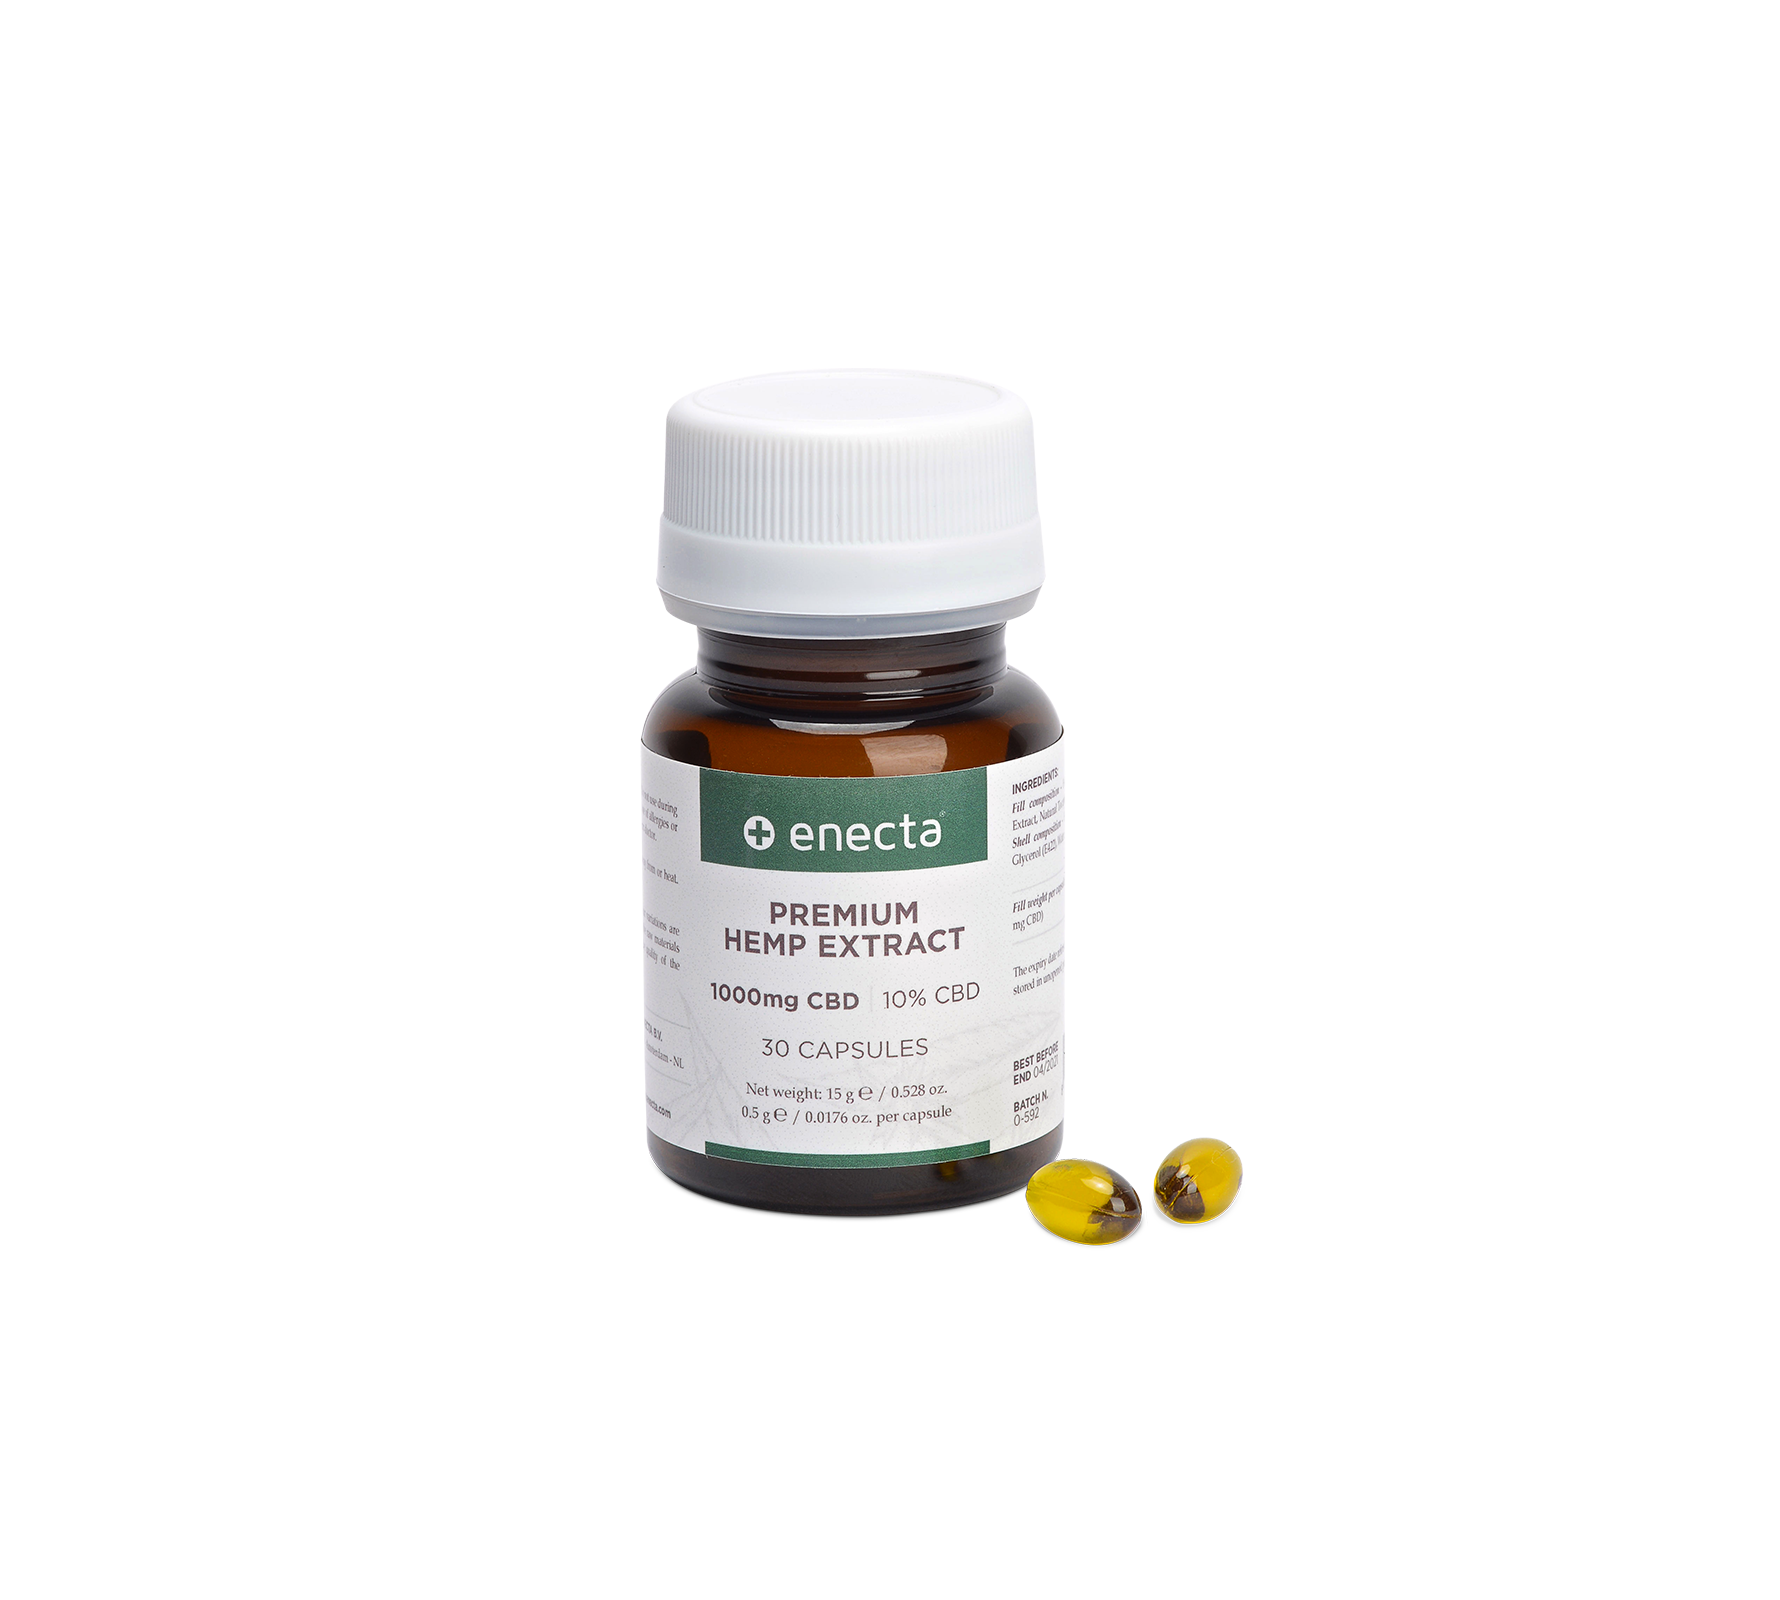 Enecta Premiumhempextract Pills Packaging Desktop Detail Hd 1780×1600